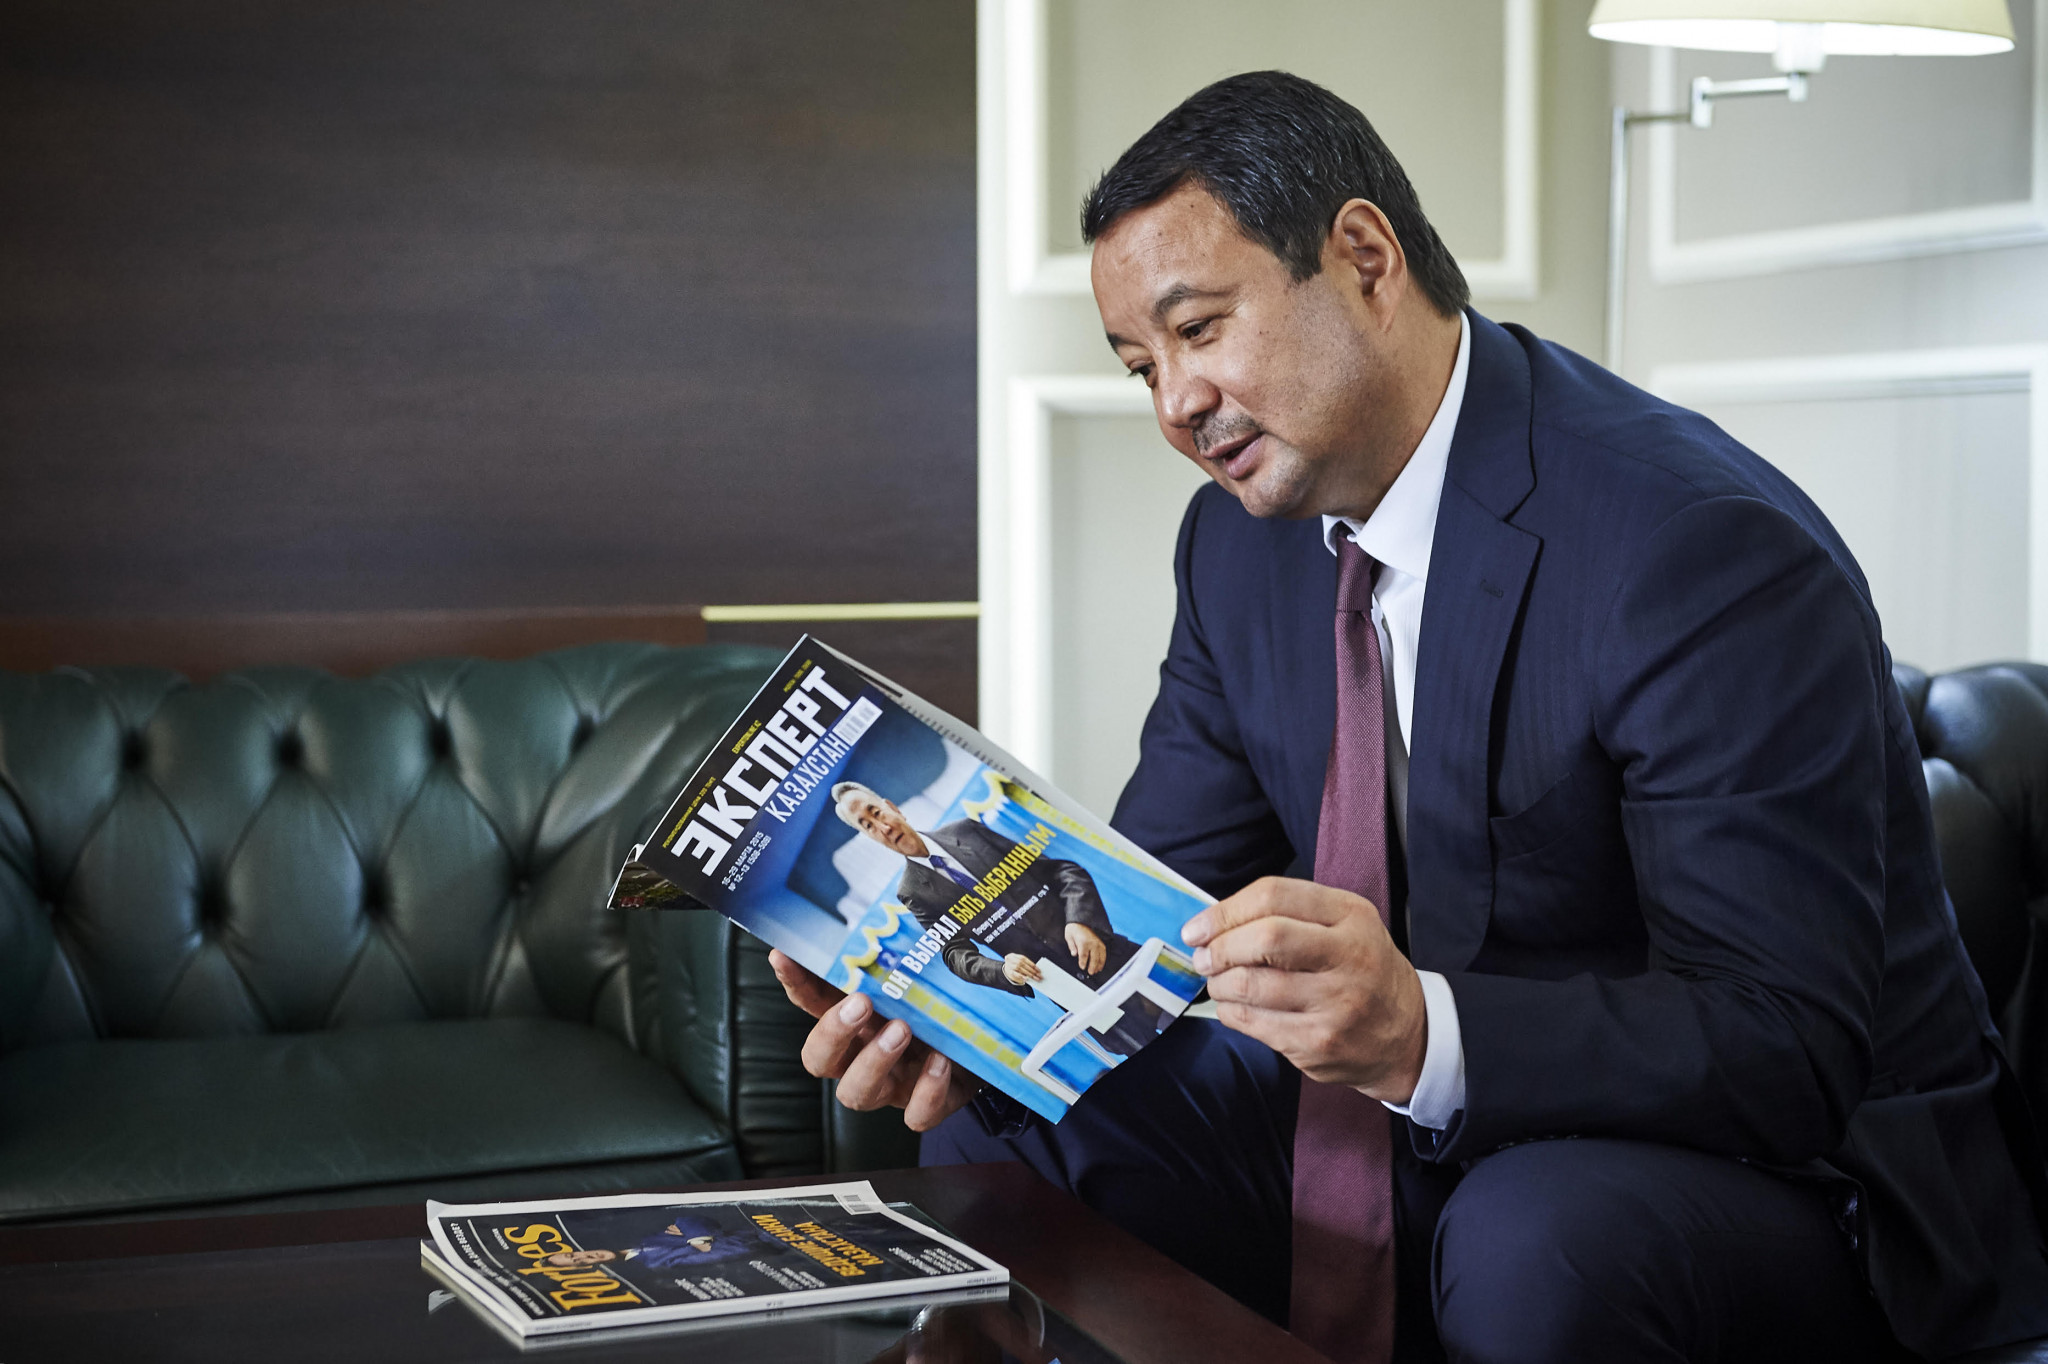 Kazakhstan's Serik Konakbayev has announced his intention to stand against Gafur Rakhimov ©ASBC